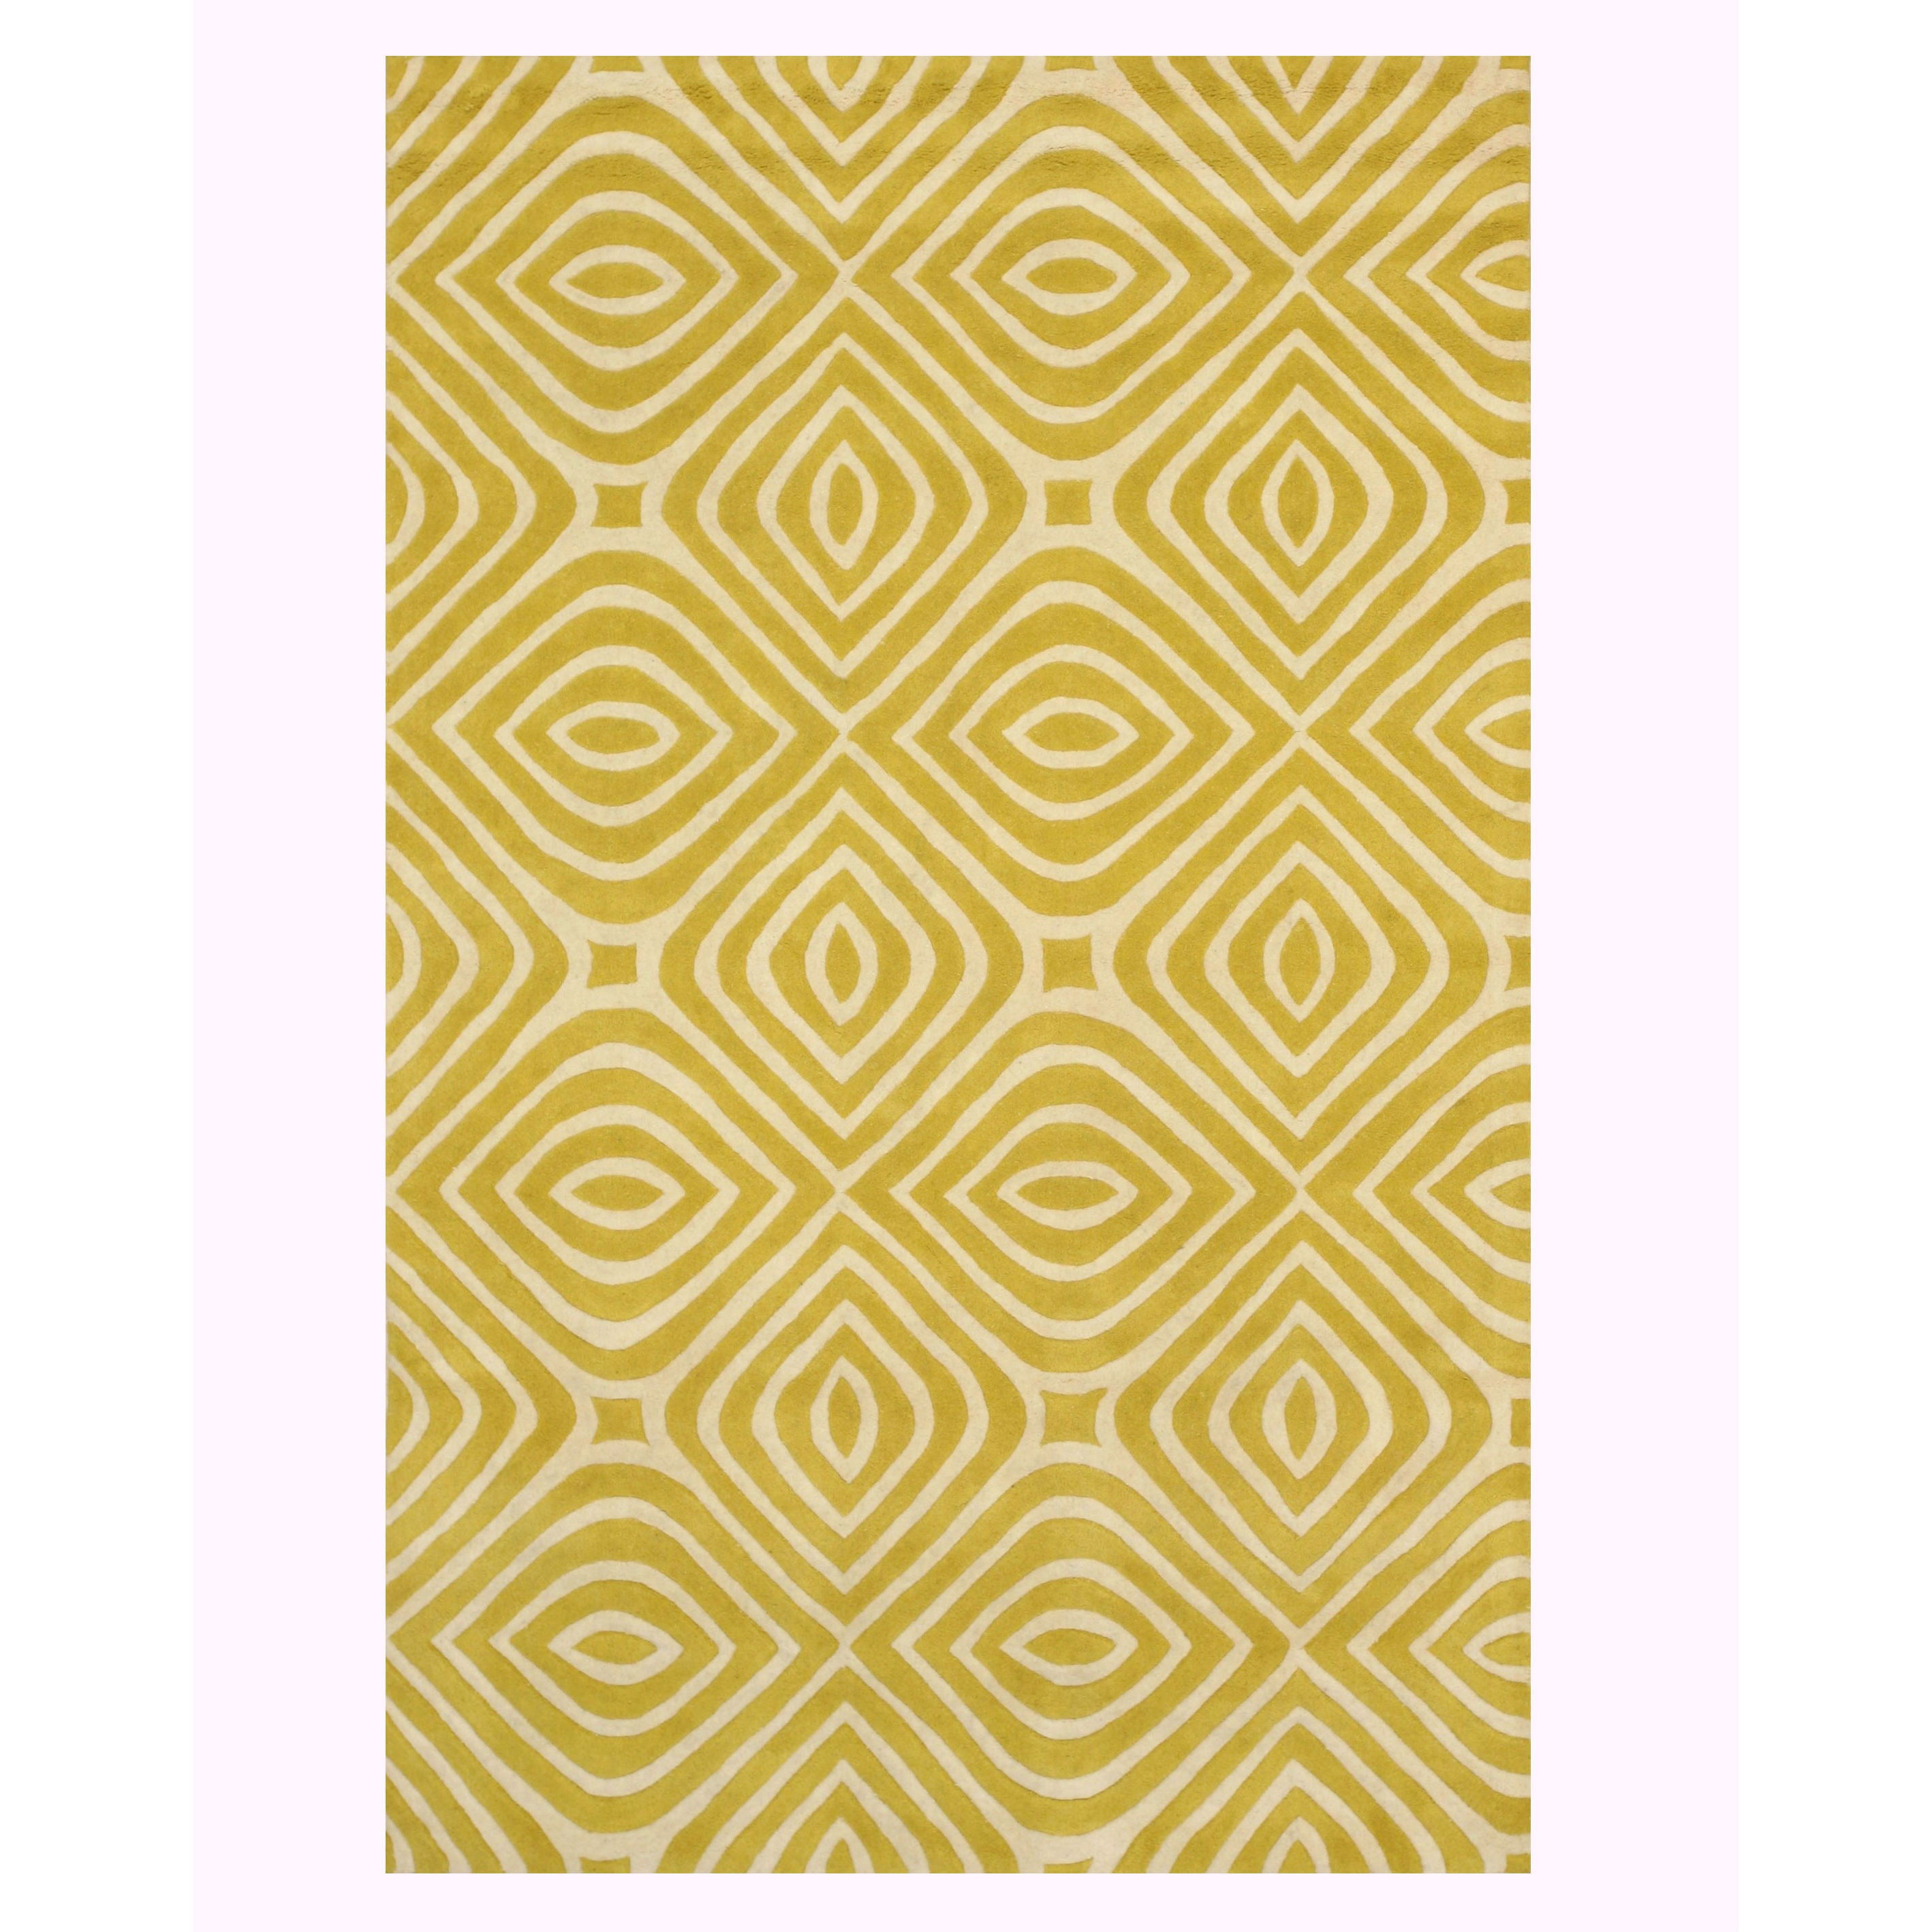 Eorc Marla Yellow Wool Hand Tufted Transitional Geometric Rug 5 X 8 Overstock 15369357 Yellow 8 X 10